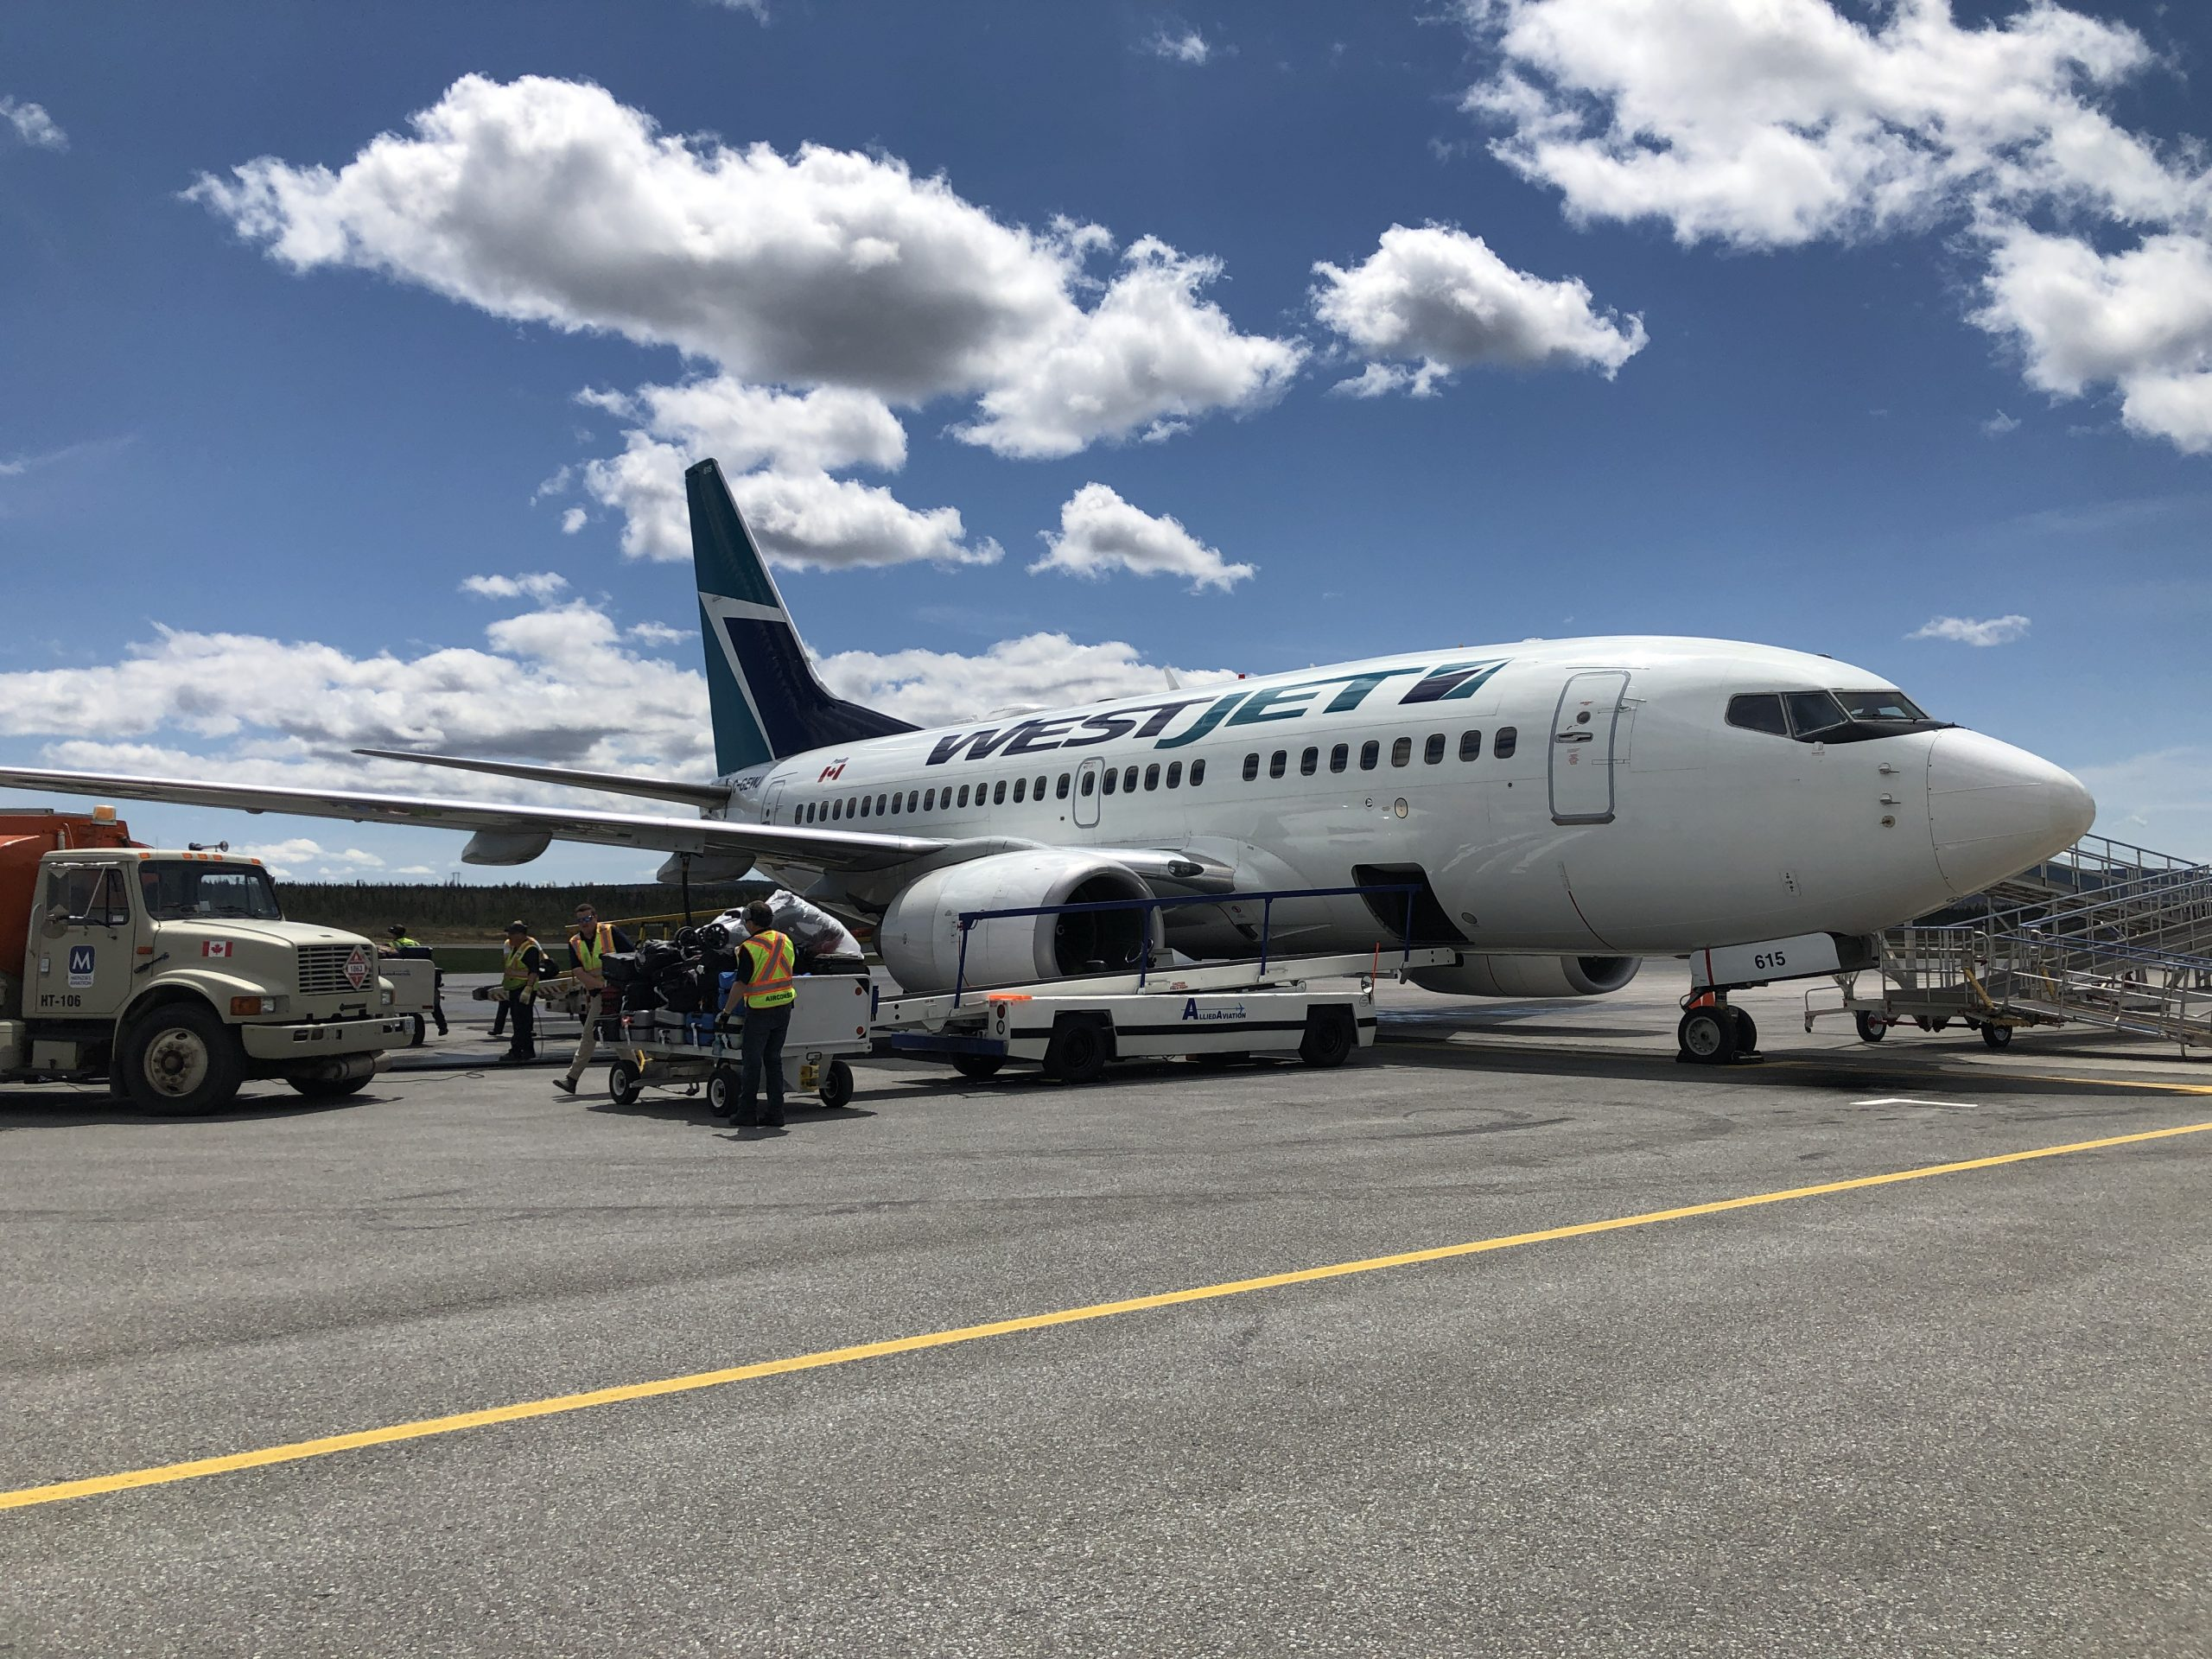 Cathy Pacific vs. WestJet: Who had Better Customer Service During COVID19